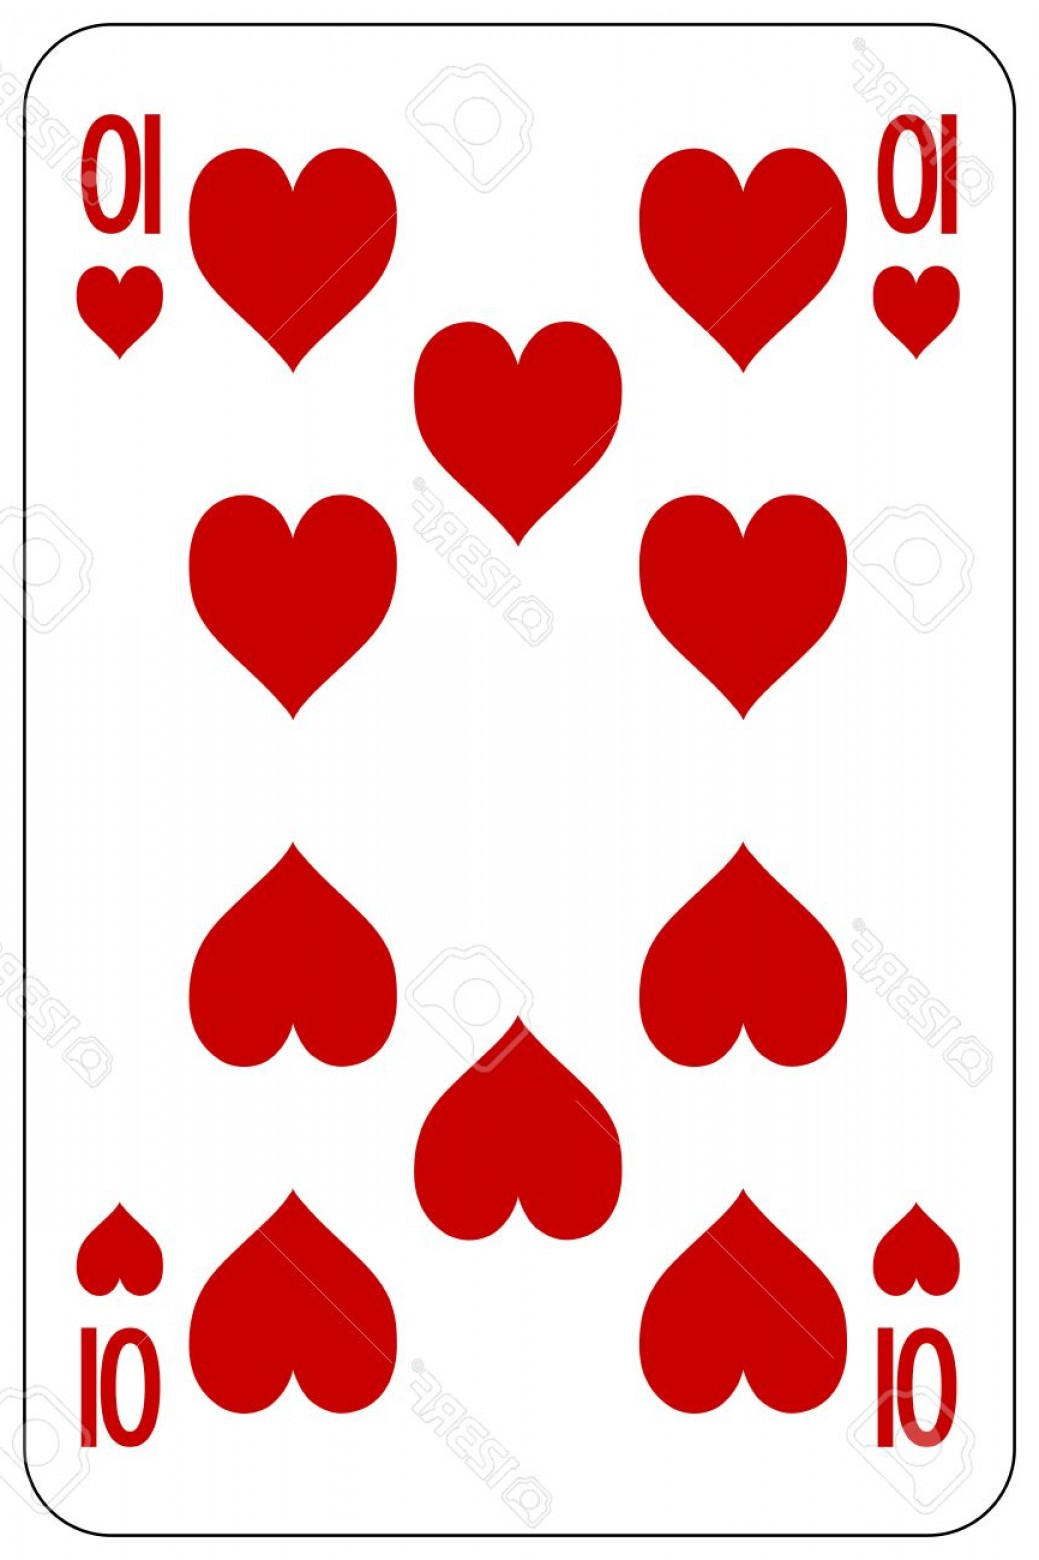 10 Playing Card Vector: Photostock Vector Poker Playing Card Heart